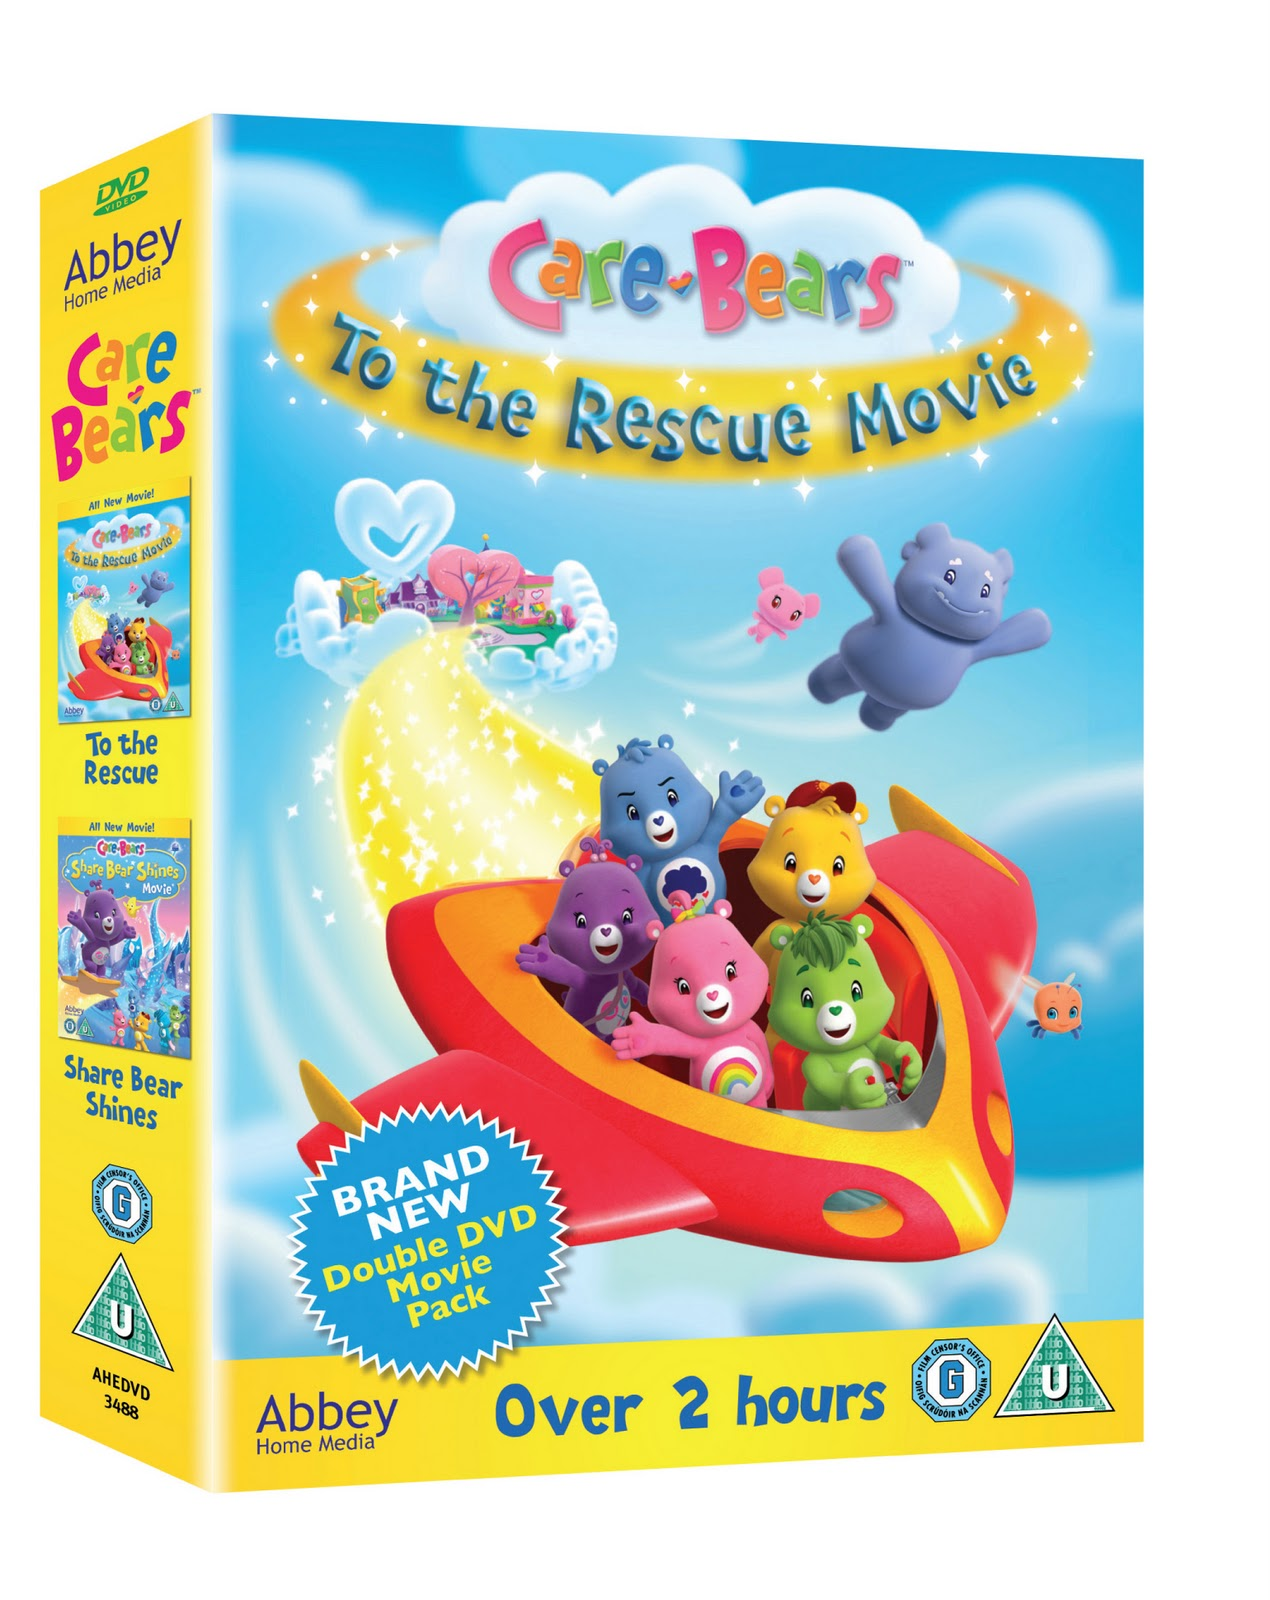 Carebears Movie Dvd Review And Competition